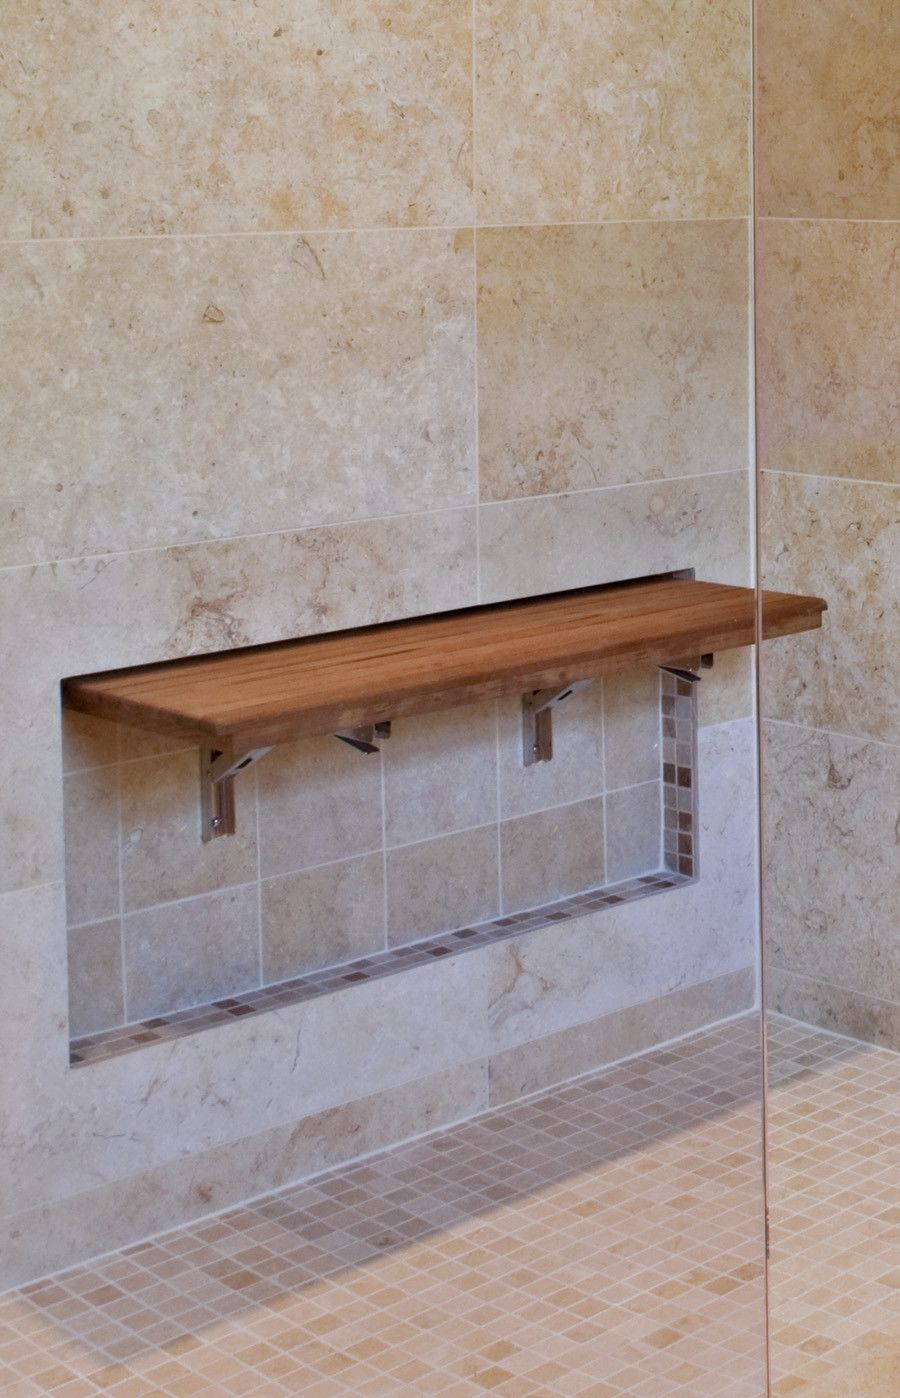 Teakworks4u Teak Wall Mount Fold Down Shower Bench Seat Reviews